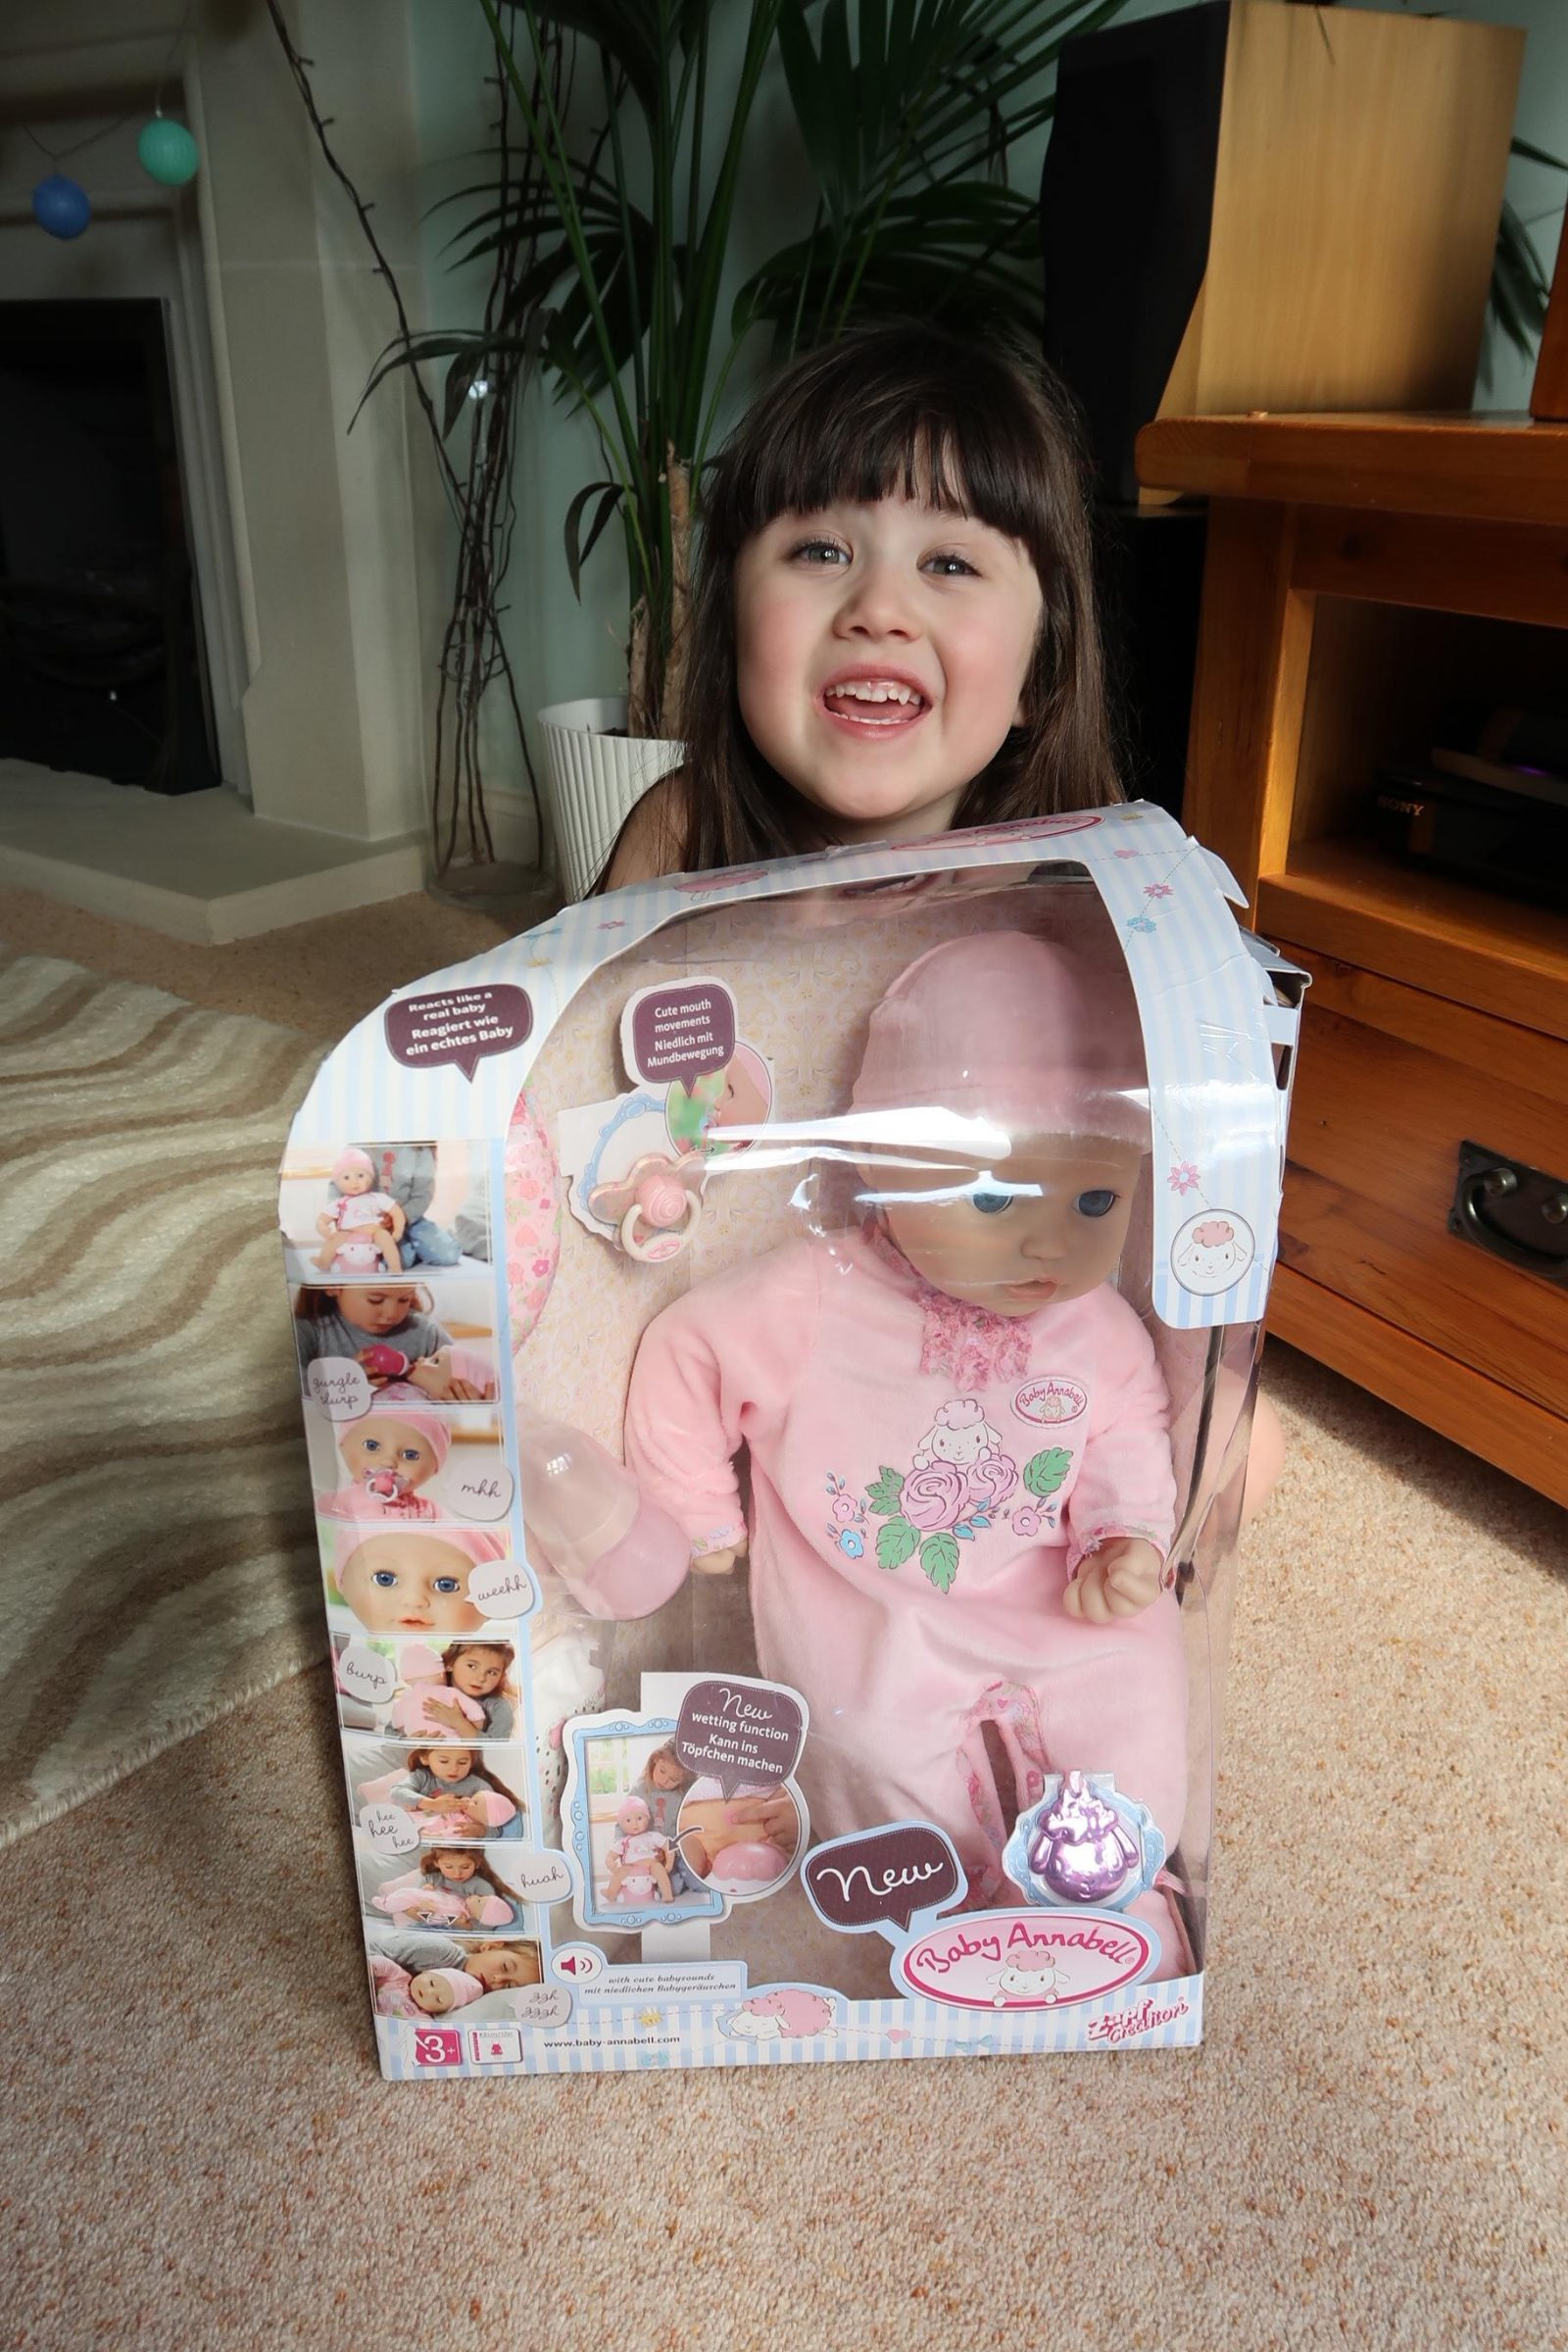 girl excited over interactive baby Annabell dol